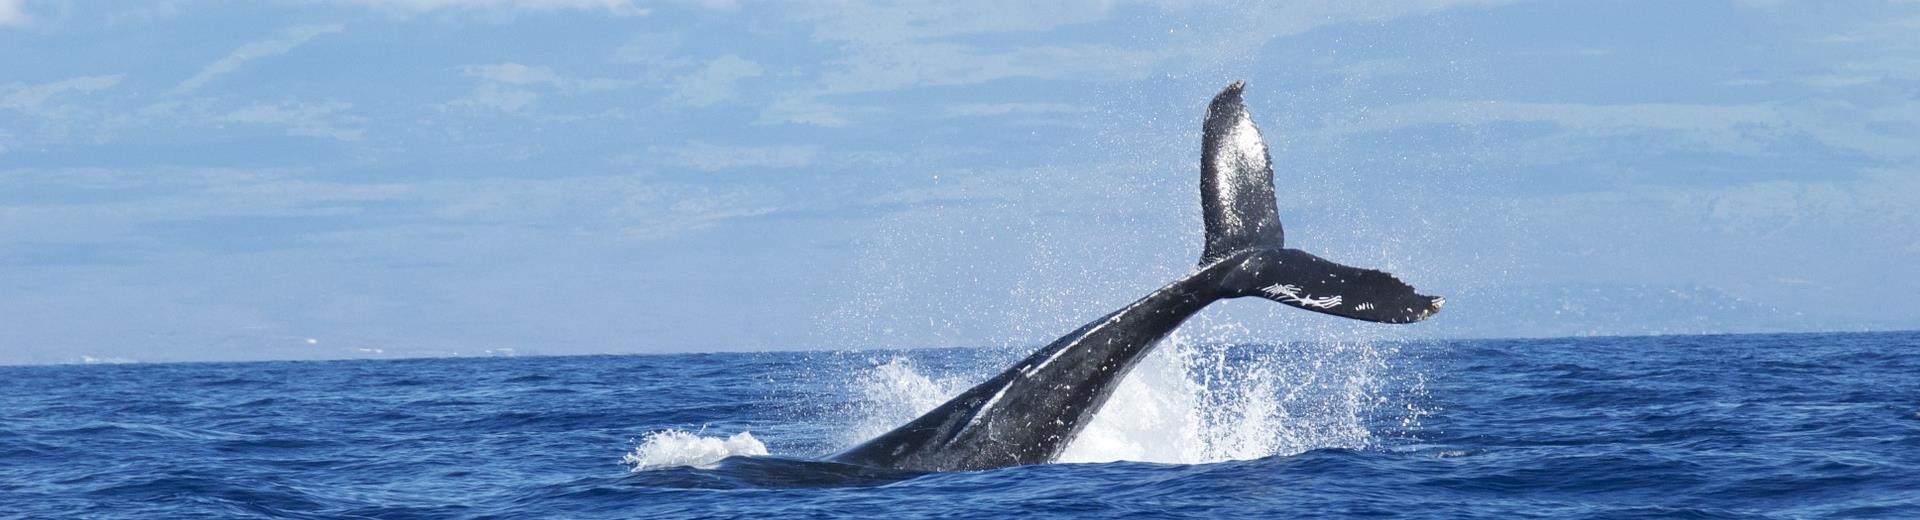 Hiking in Liguria for whale watching: Book now on our hotel!